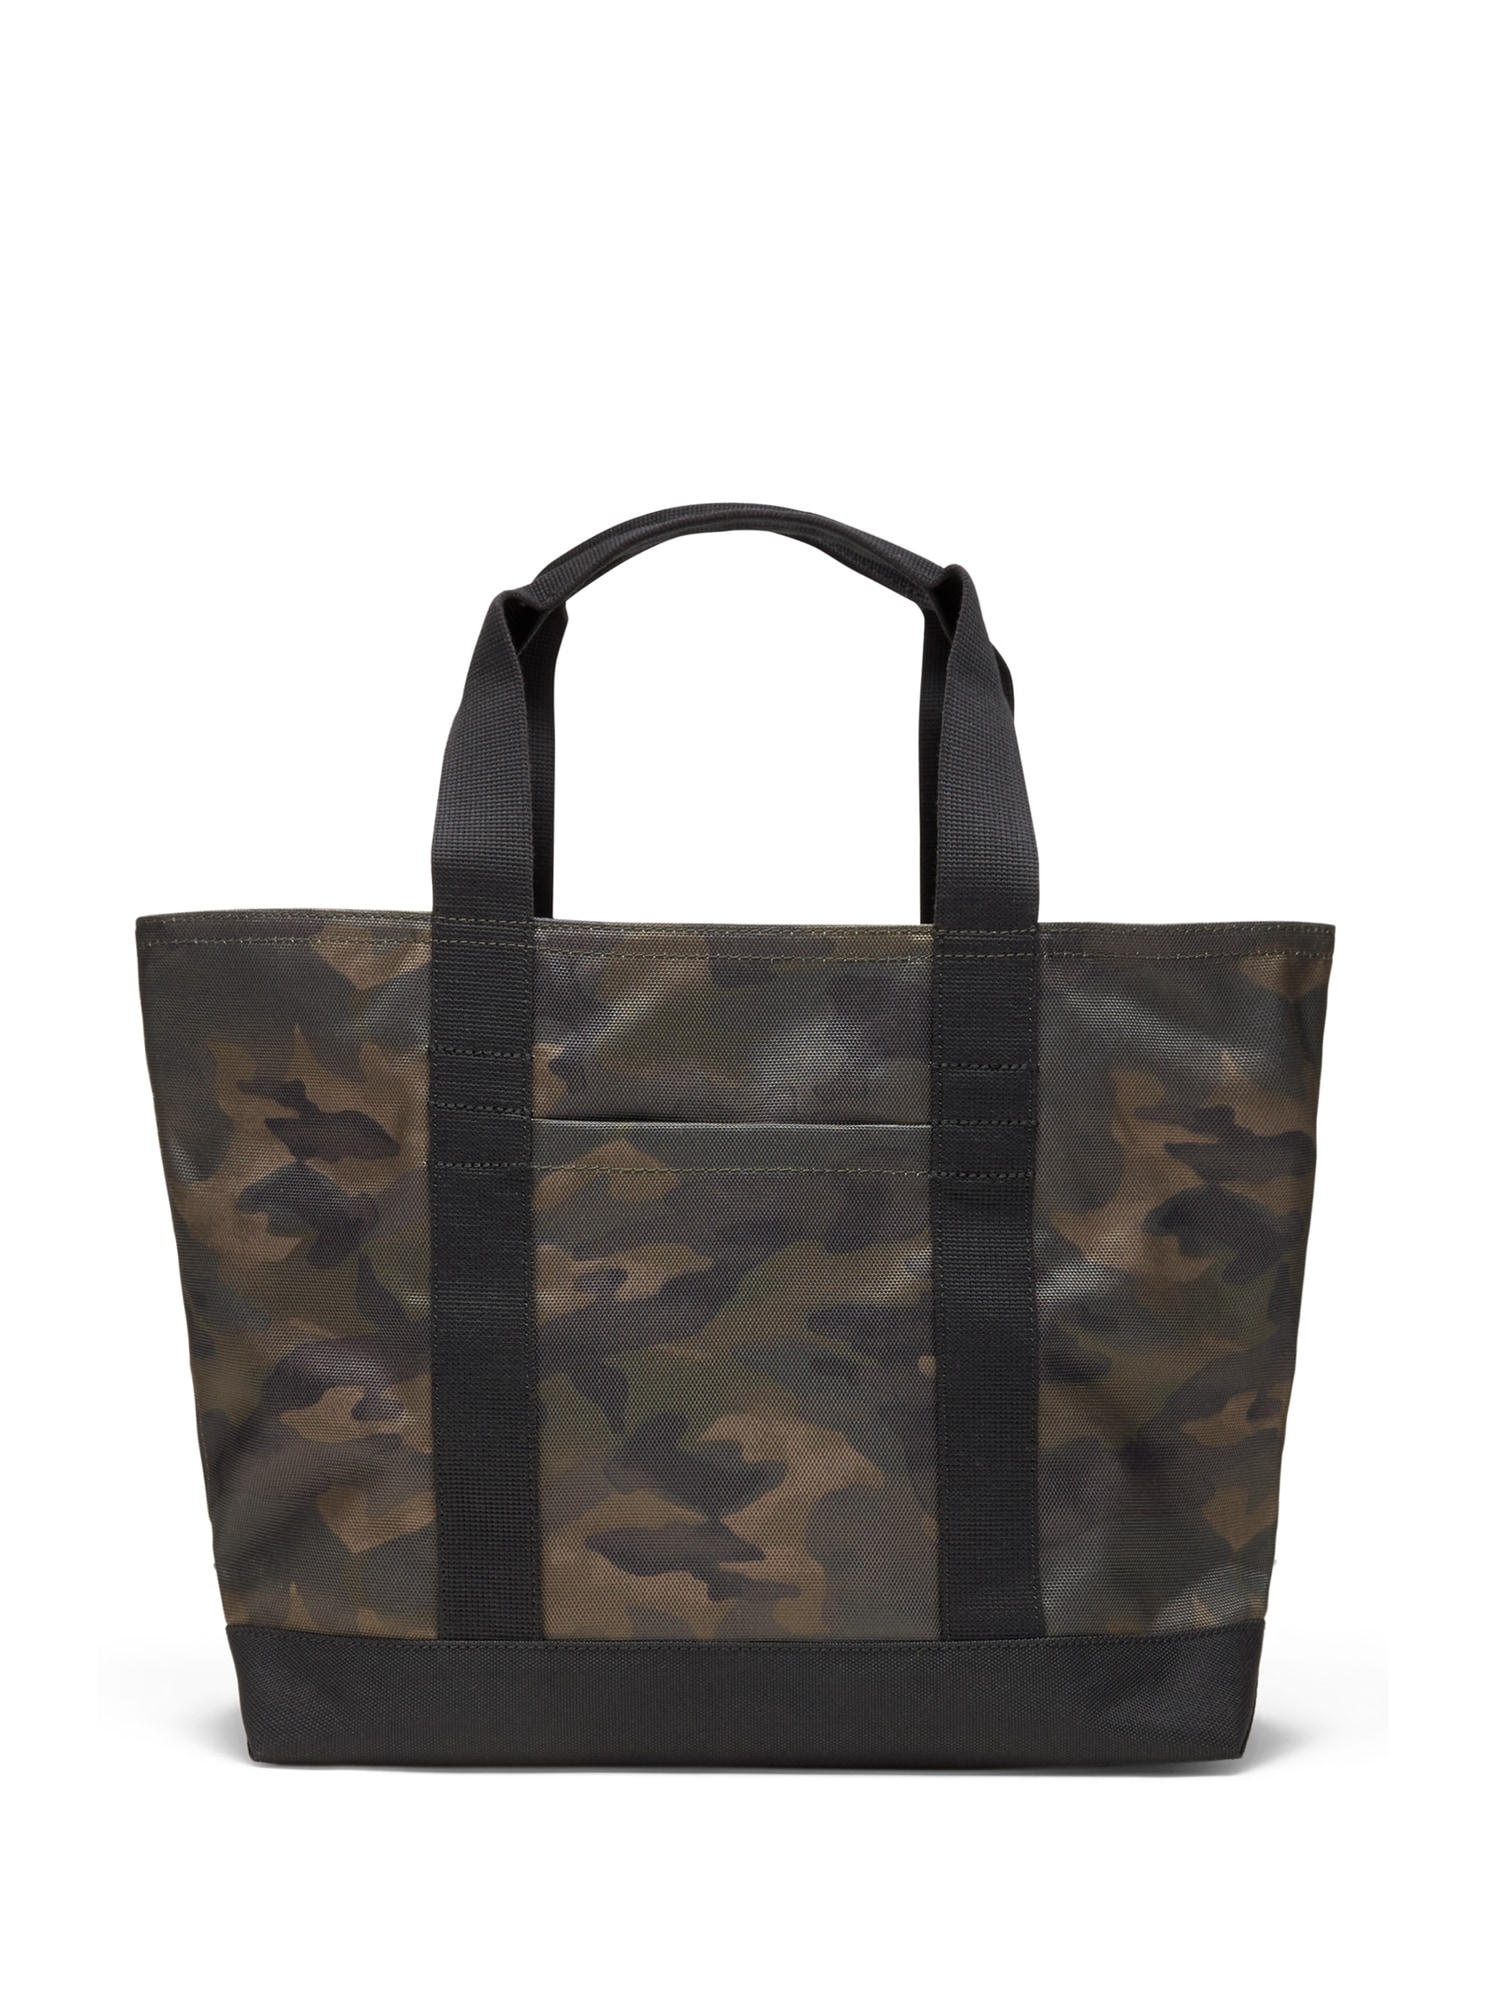 8847fc090289 Camouflage Small Tote Bag